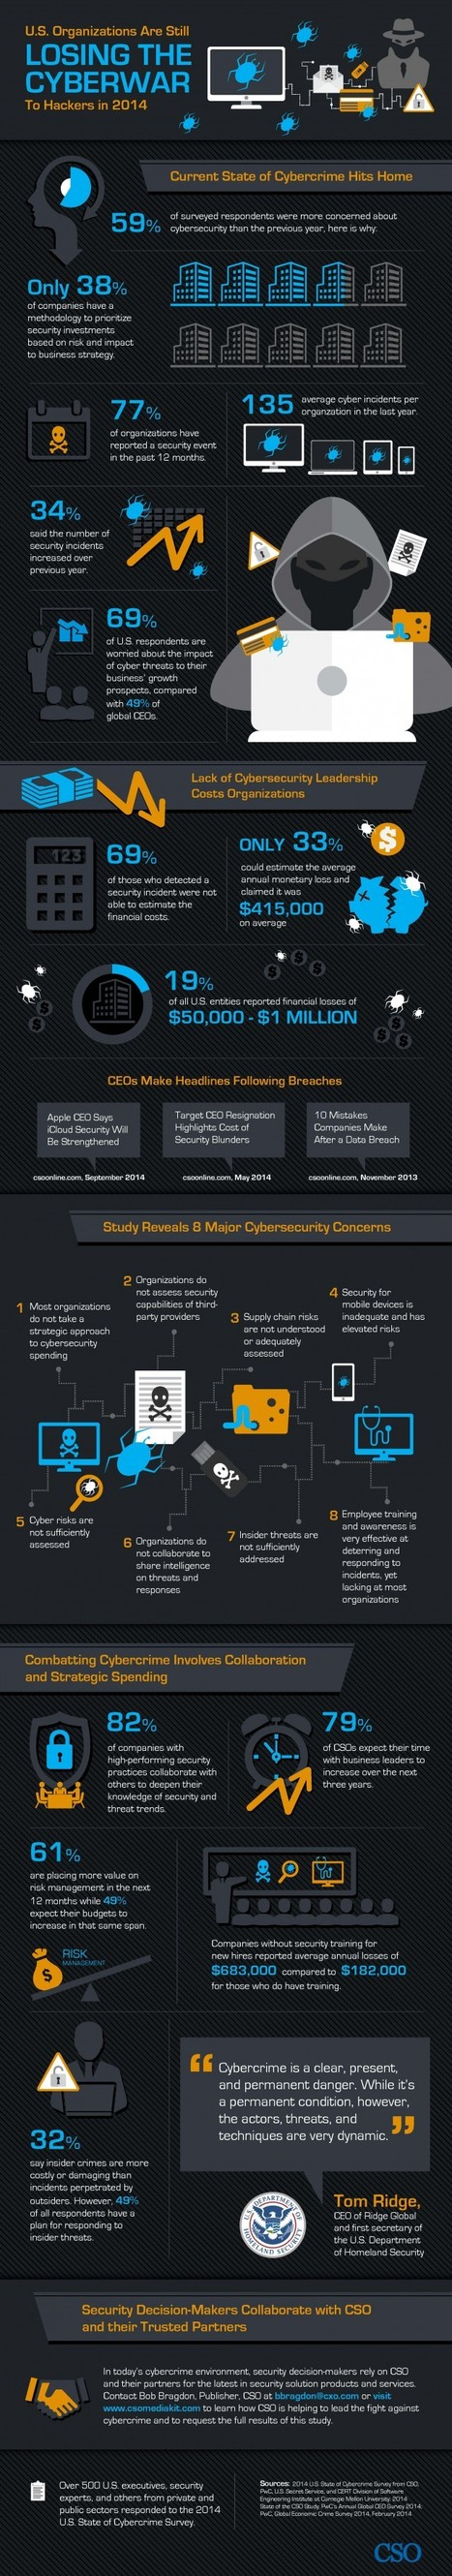 INFOGRAPHIC: Losing The Cyberwar To Hackers | Cloud Central | Scoop.it